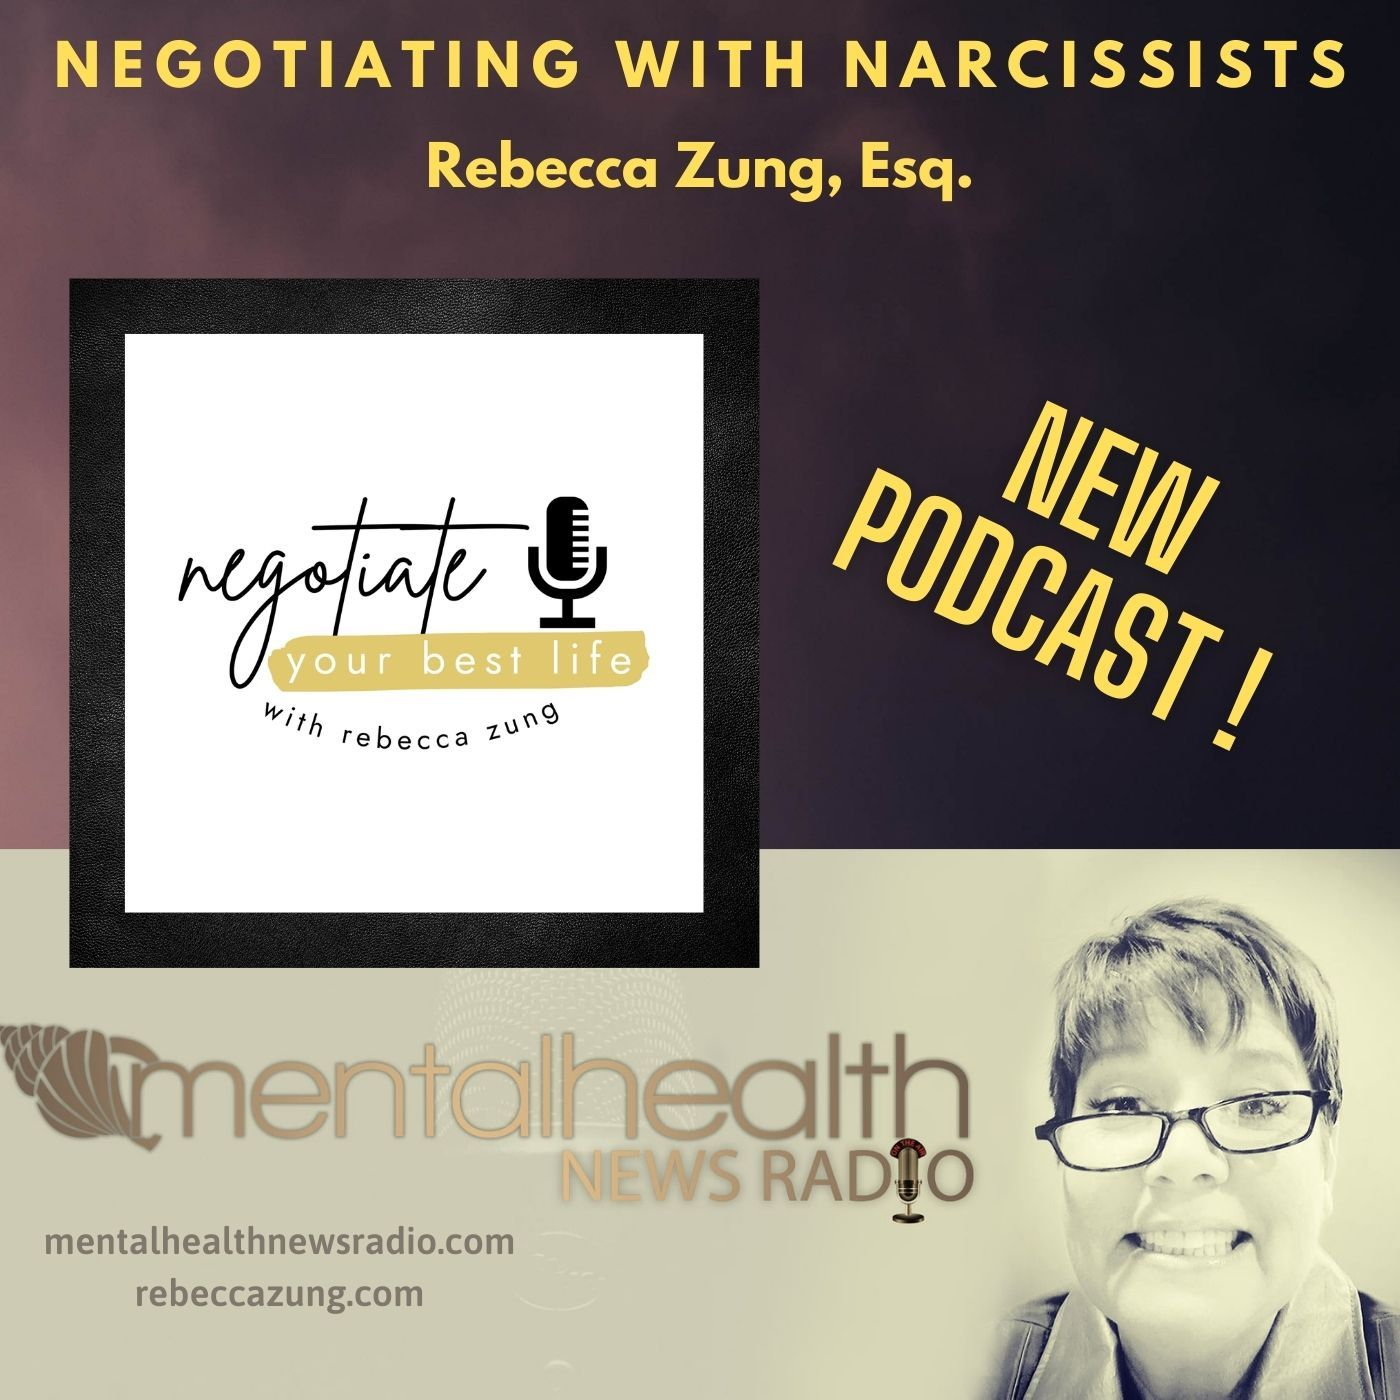 Mental Health News Radio - Negotiating with Narcissists with Rebecca Zung, Esq.